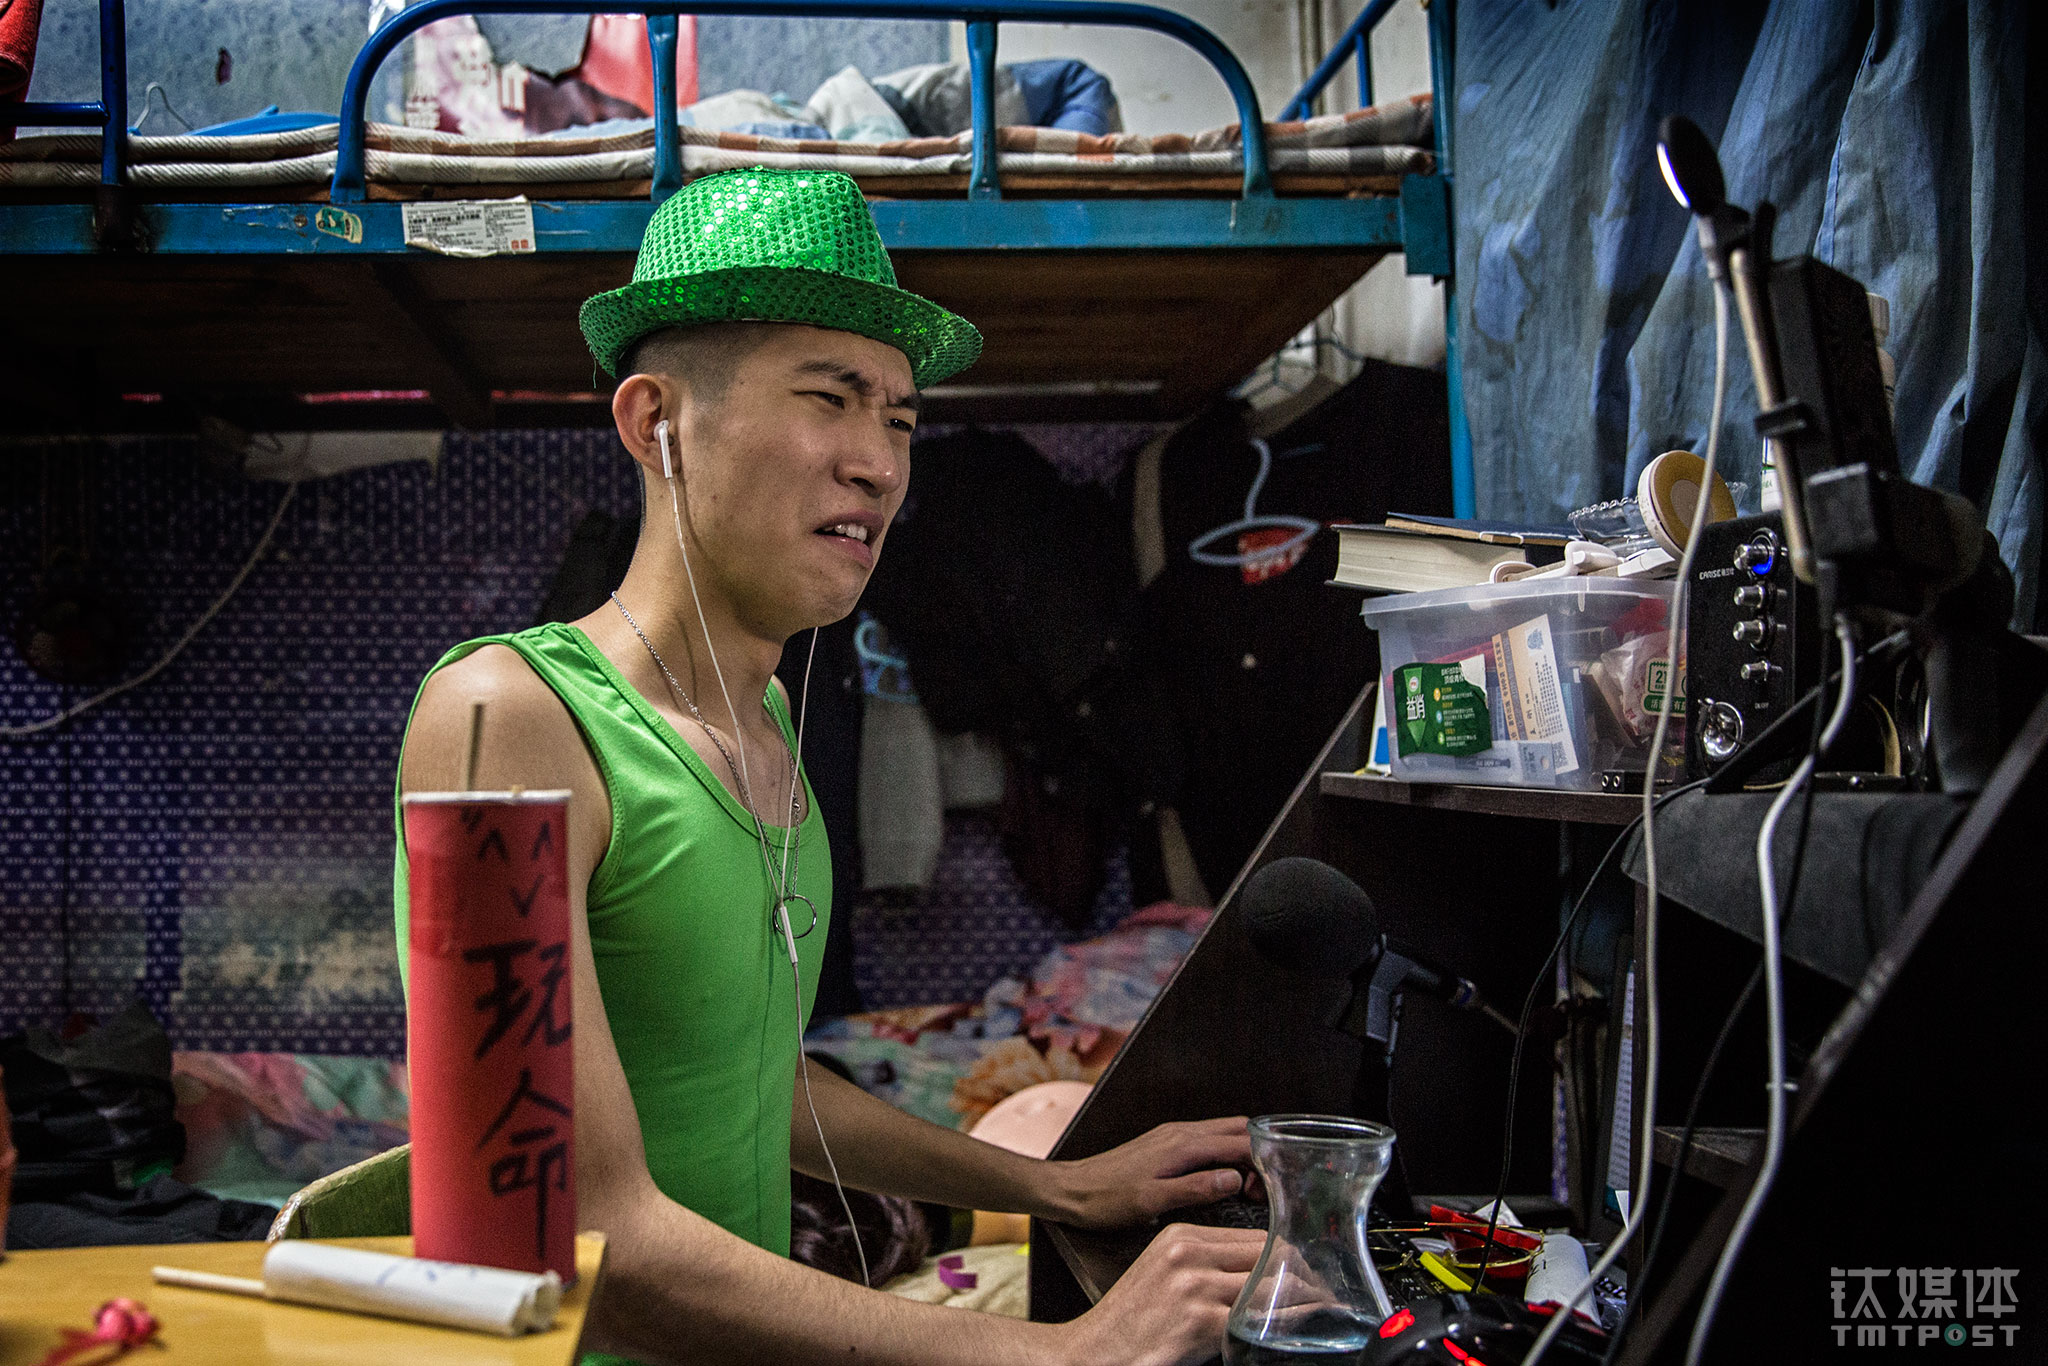 "Hao immediately transformed himself into a host performer as soon as he logged into the livestream channel. Livestream challenges his performing skills and impromptu skills. He would have to interact with his fans and answer questions from them. This can't really be prepared beforehand. To entertain the audience, this time Hao was wearing a green hat and green tanks. ""Entertaining the audience on a livestream is also a form of acting,"" Hao Kun told TMTPost, ""The short videos and livestream content supplement each other. The short videos and the jokes in them are fixed. But with livestreaming we can encounter more unknown. We need both."""